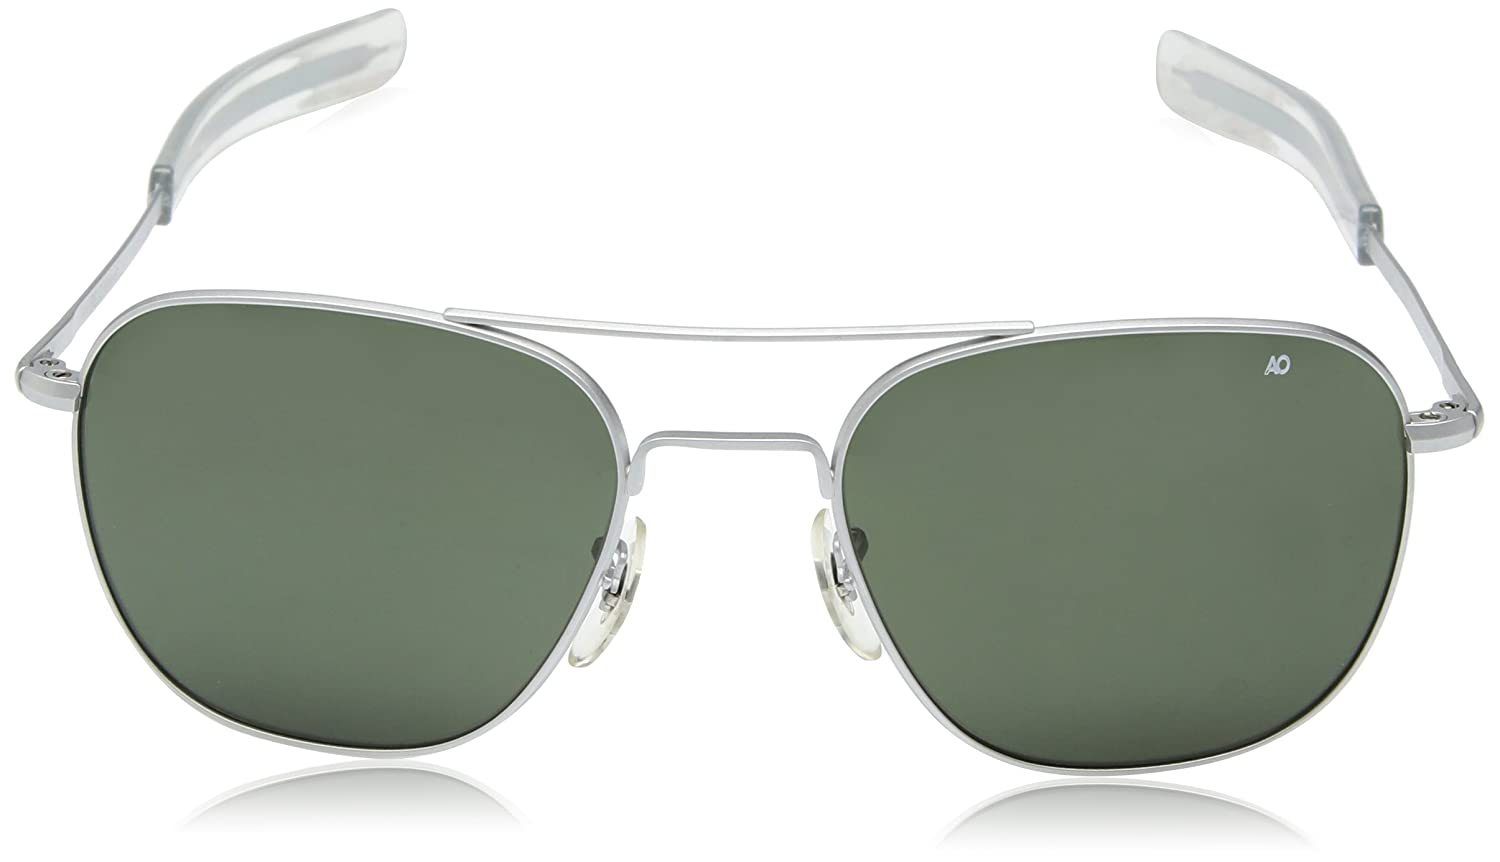 Amazon.com  American Optical Pilot Aviator Sunglasses 57 mm Silver Frame  with Bayonet Temples and True Color Gray Glass Lenses  Sports   Outdoors 38c941cdc55